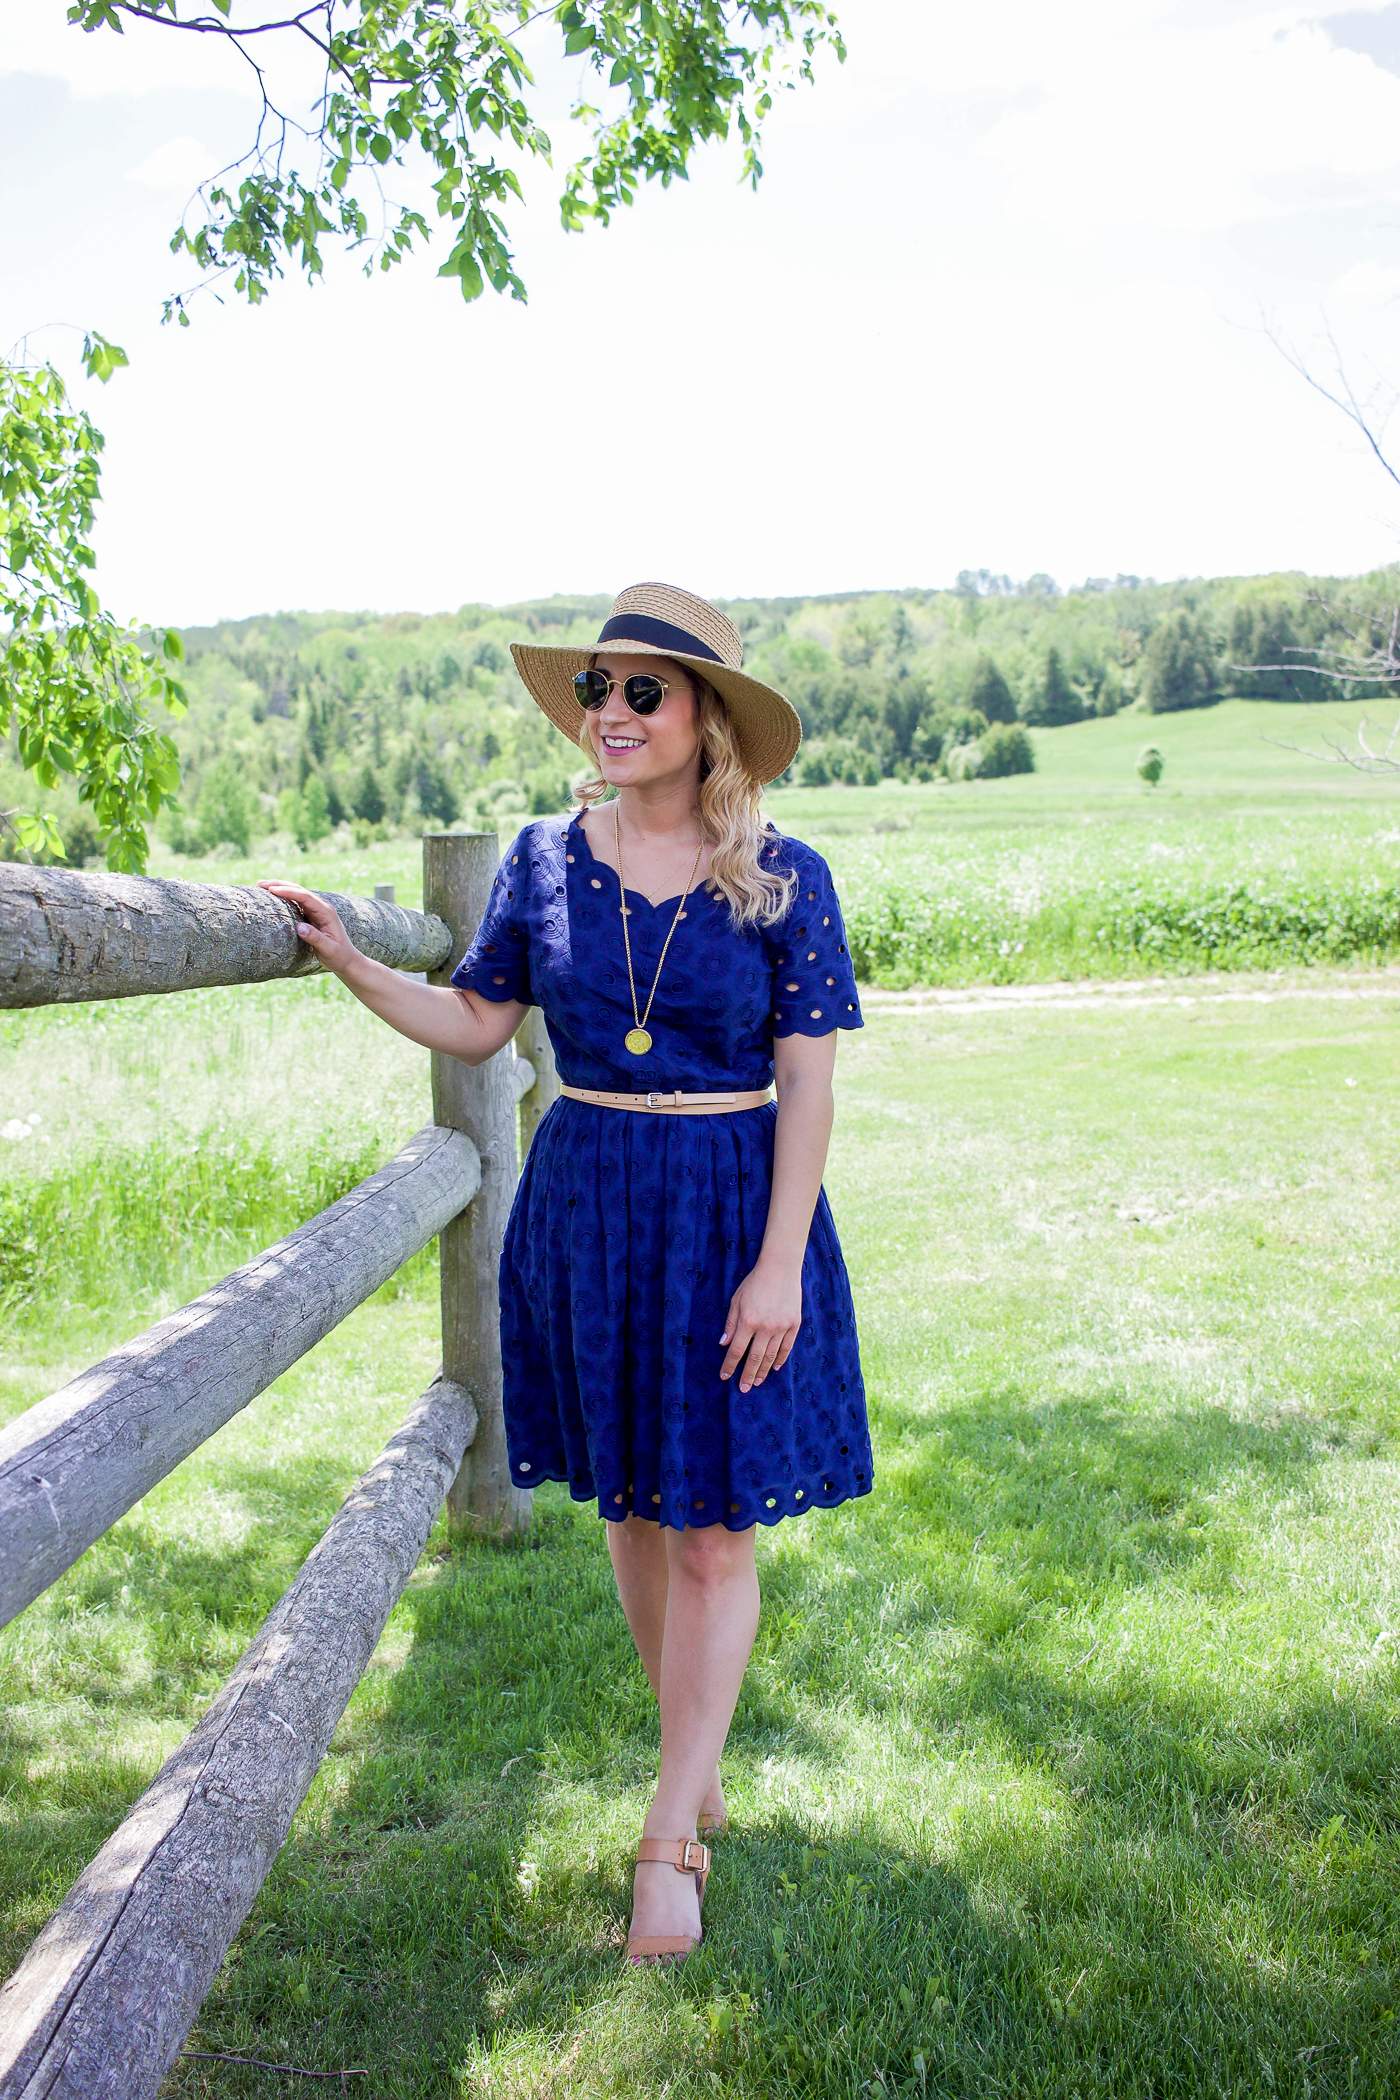 Toronto lifestyle blogger, Jackie of Something About That, is wearing a navy lace dress and a straw hat from H&M